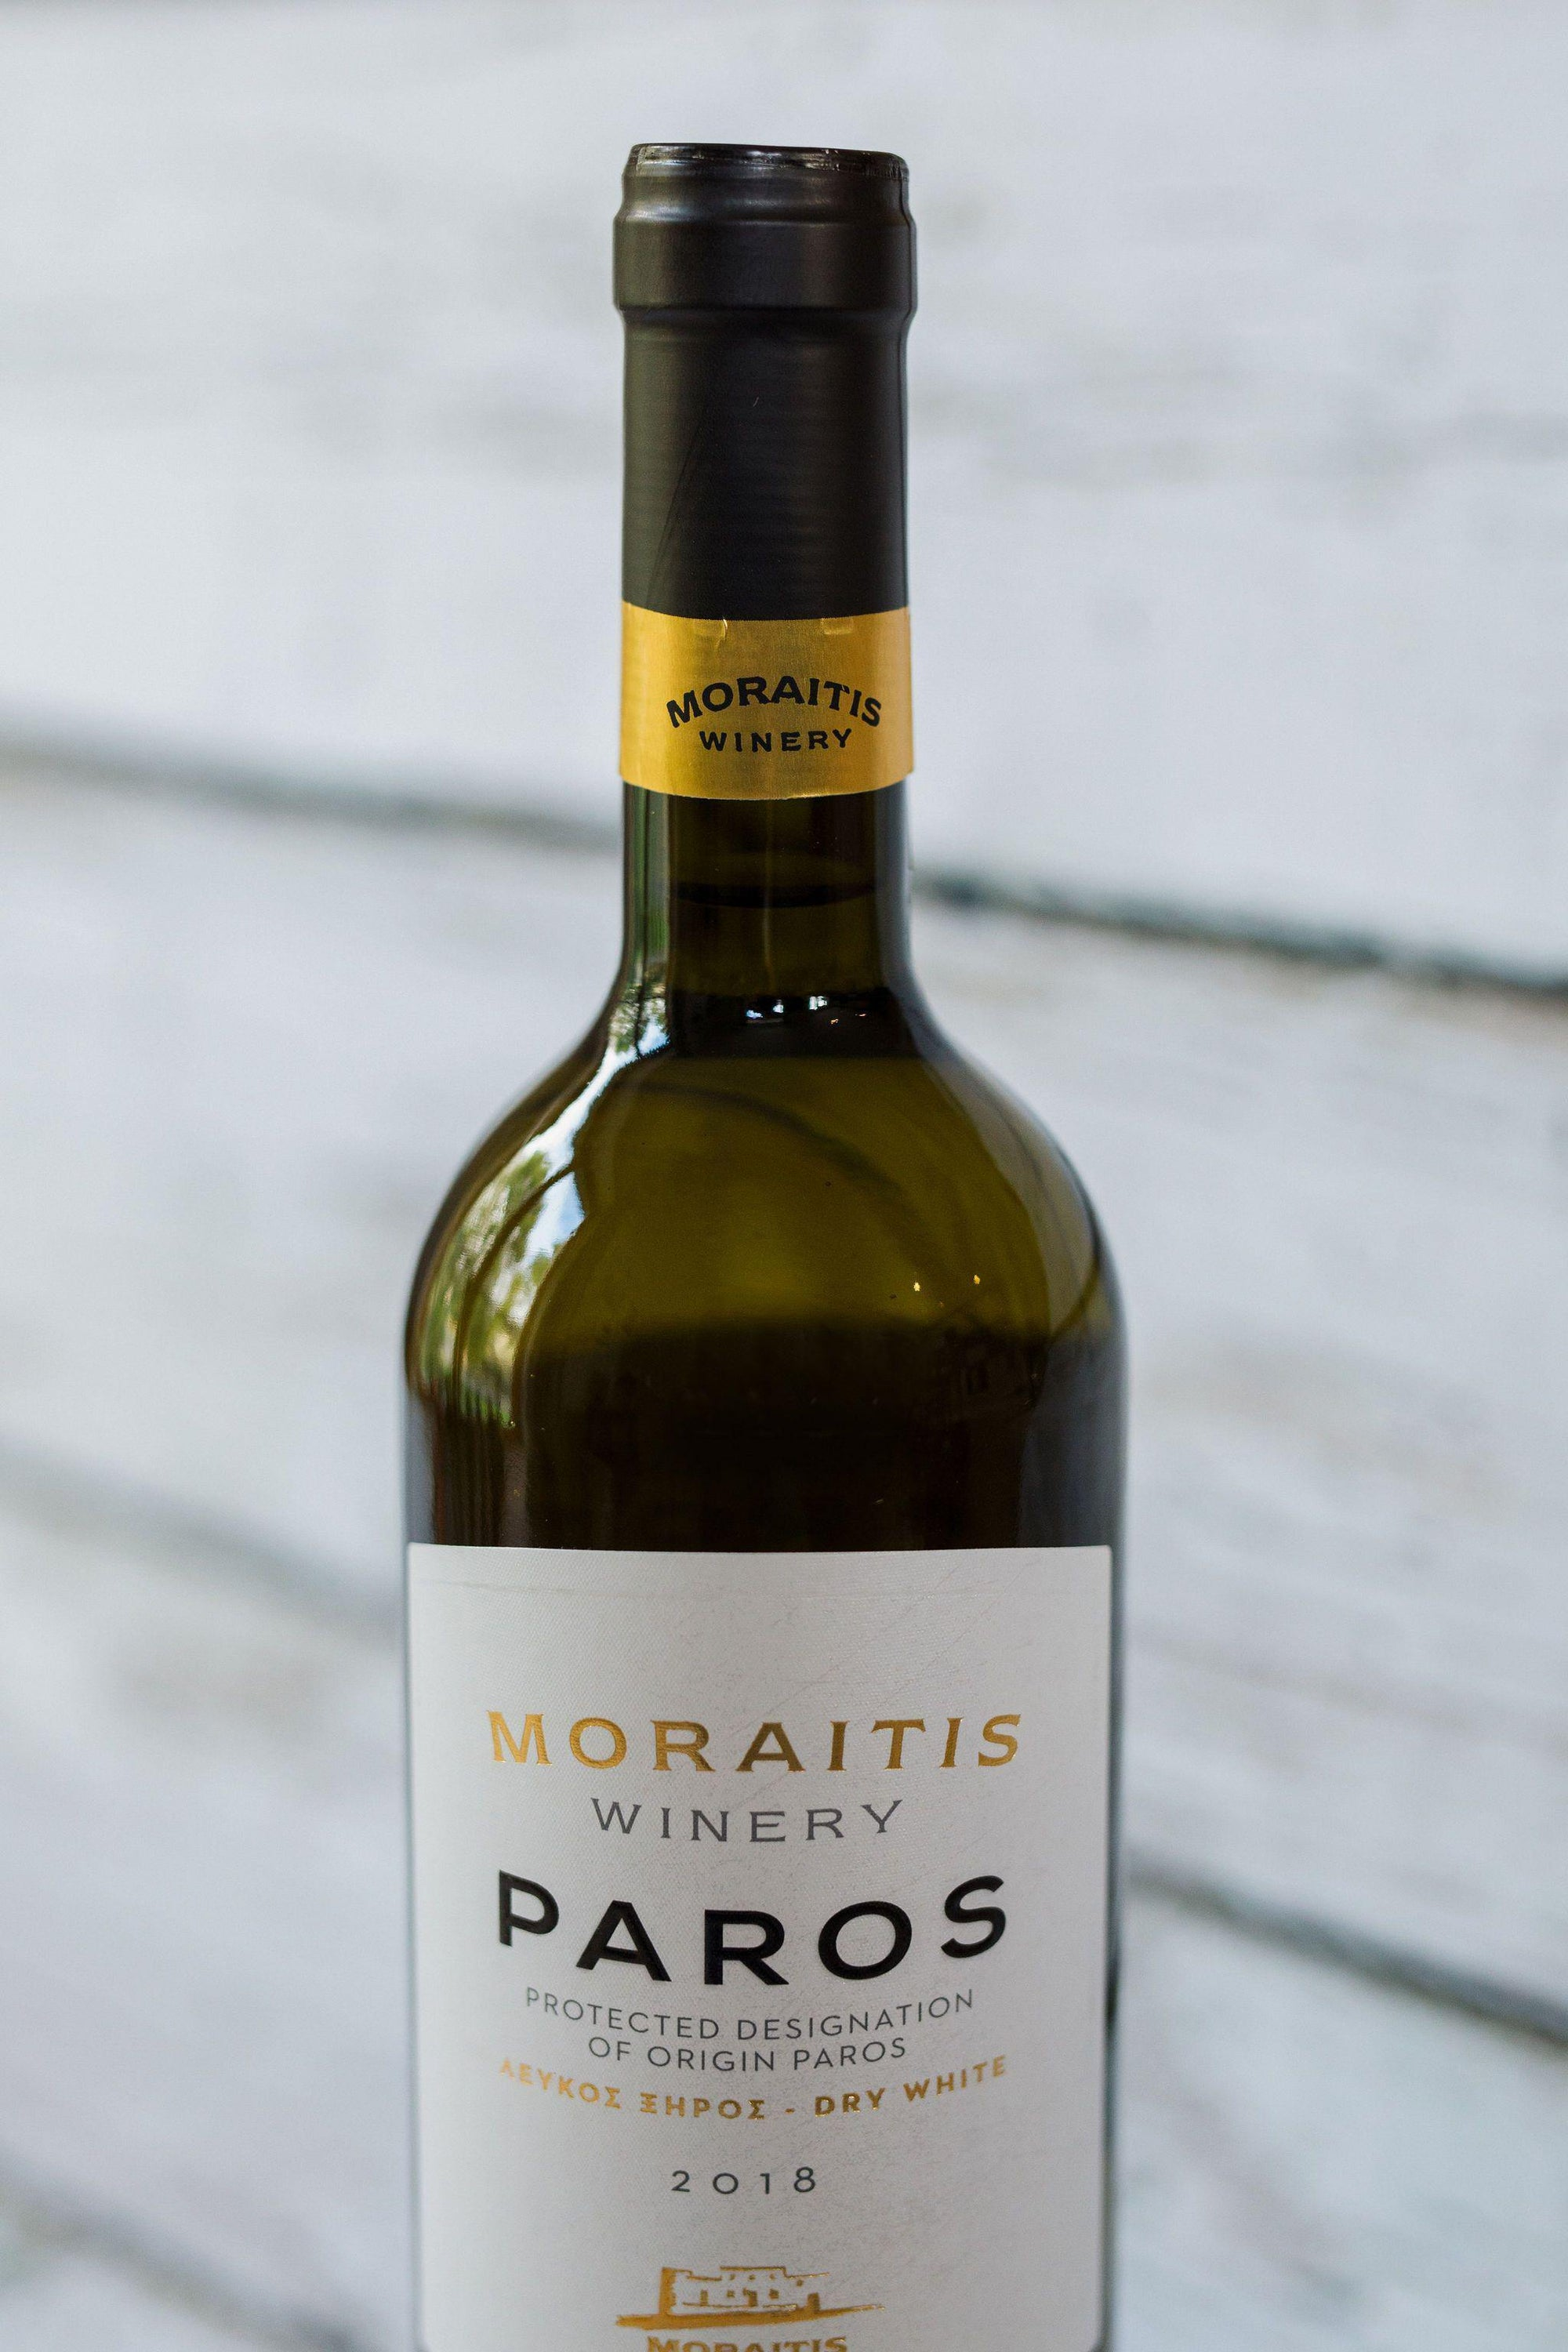 750ml green glass bottle of Moraitis Paros white wine with front label and black foil cap